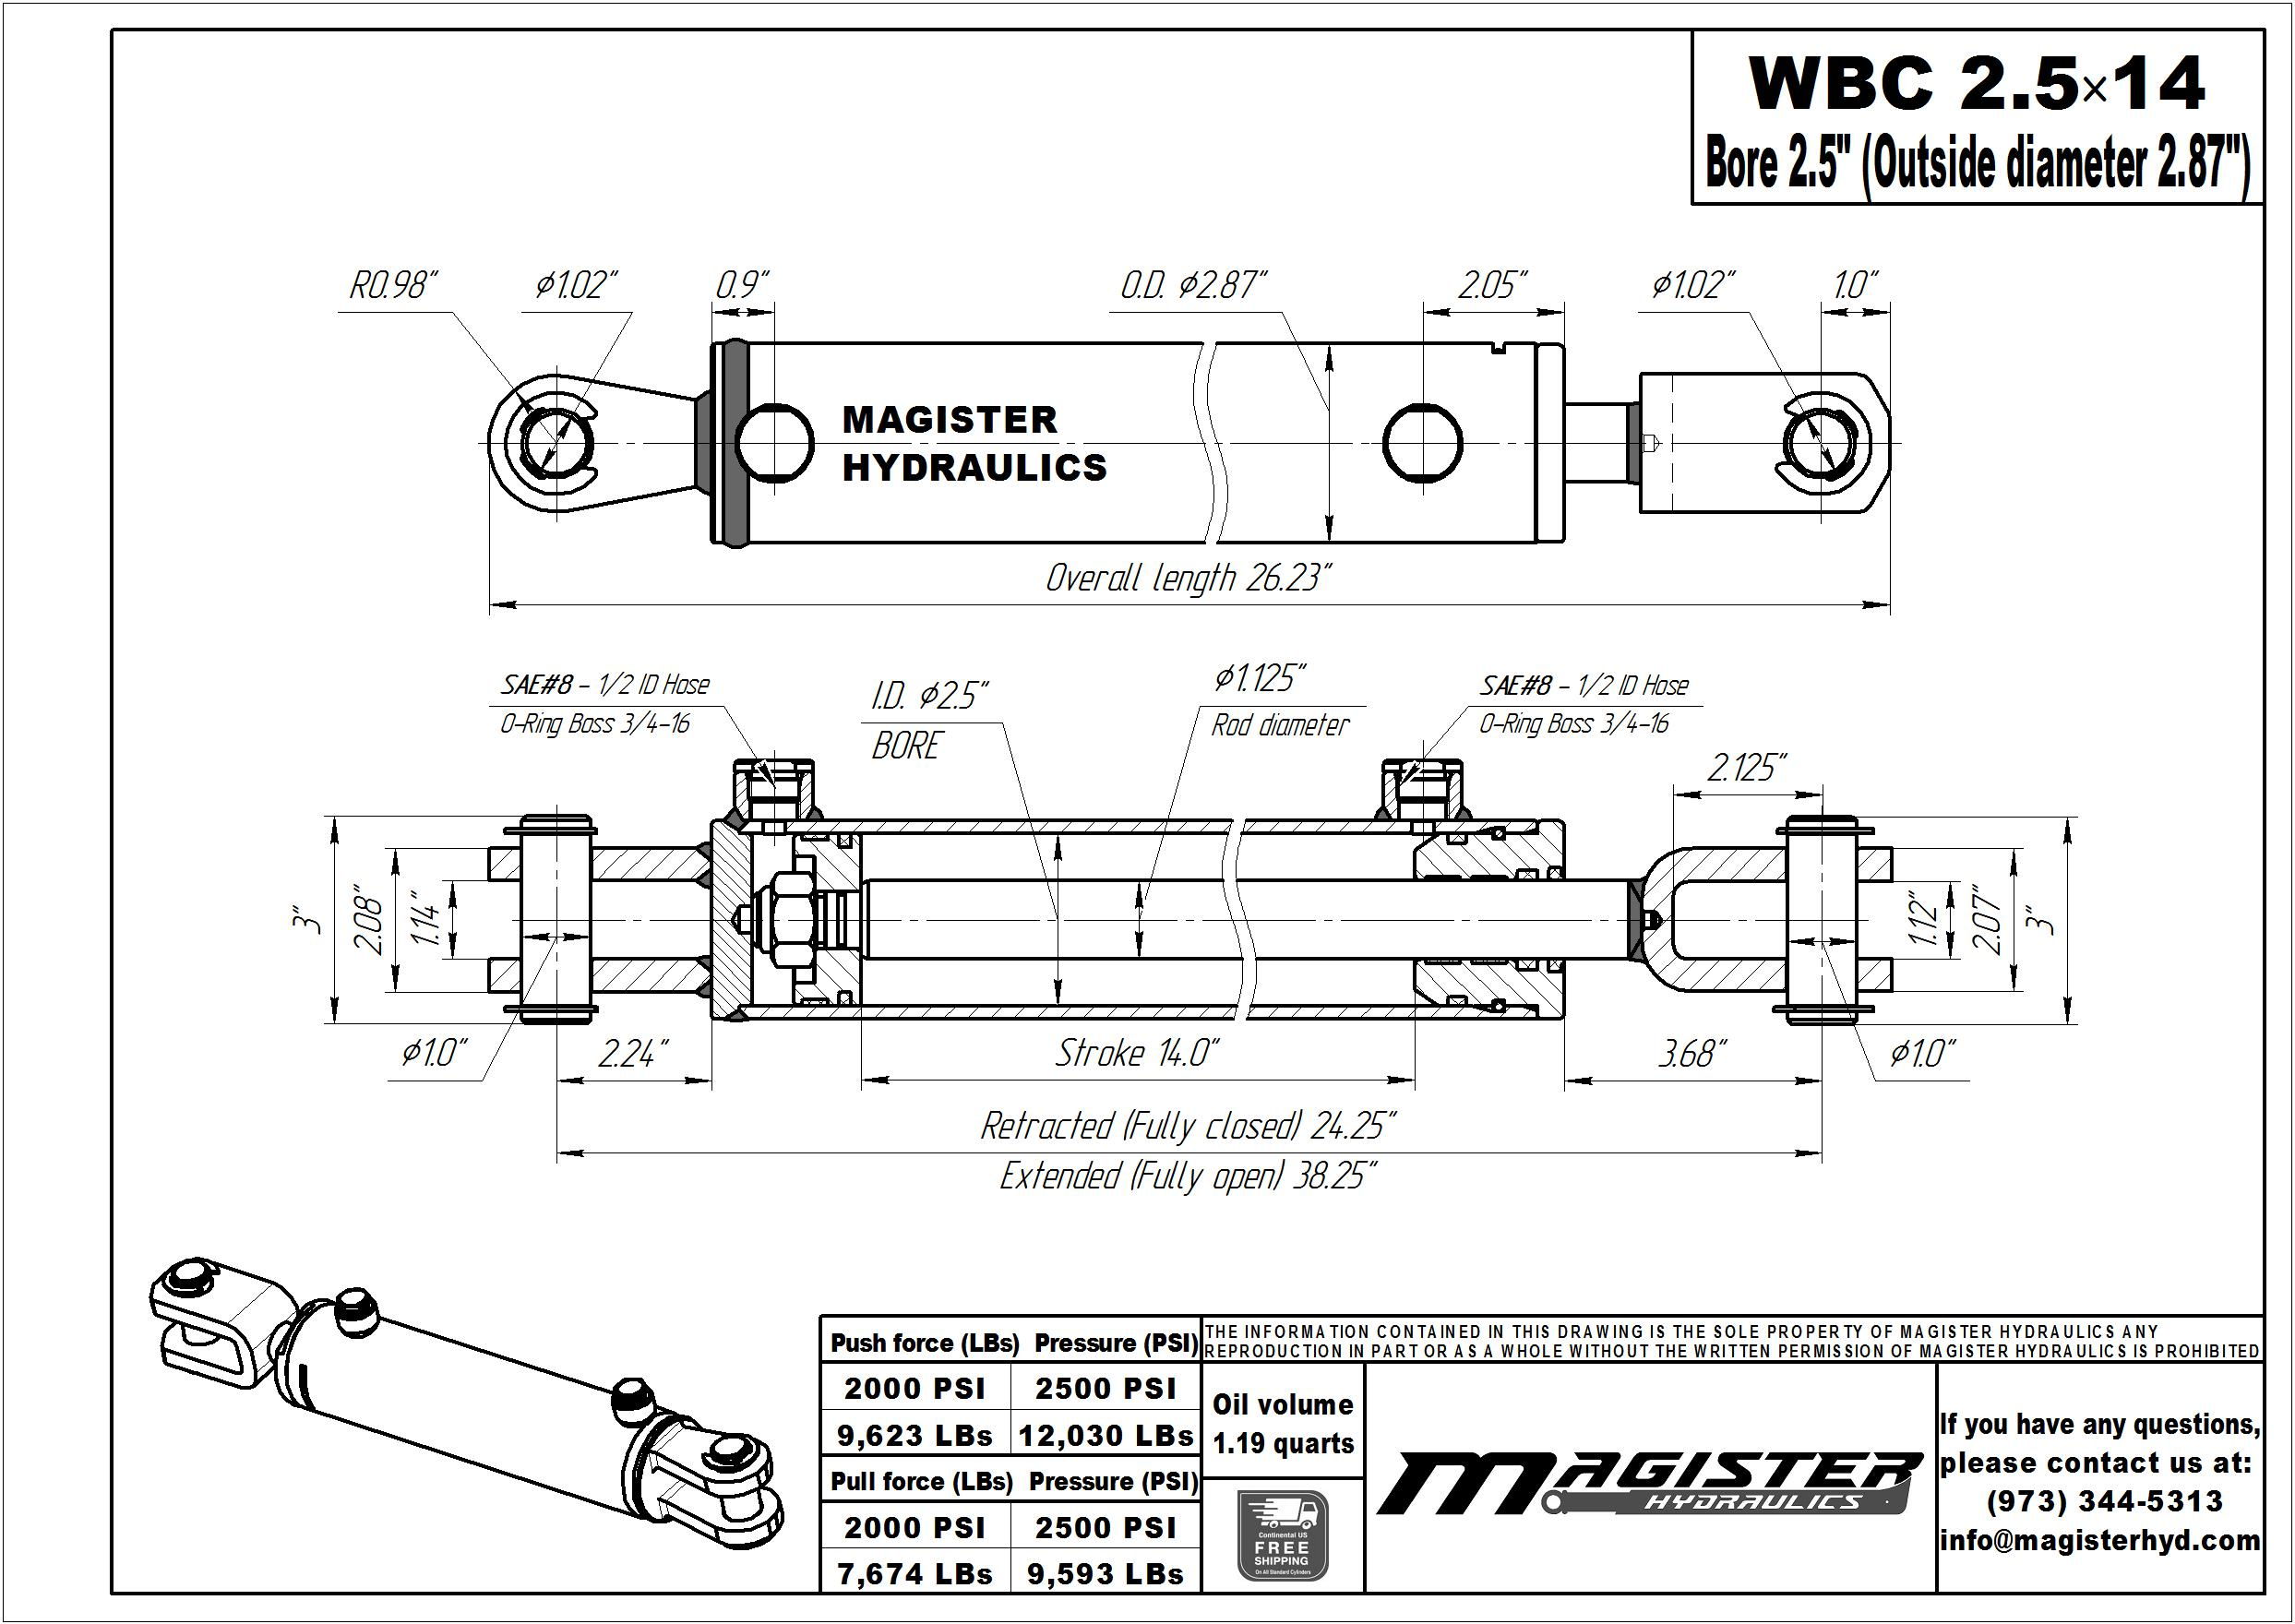 2.5 bore x 14 stroke hydraulic cylinder, ag clevis double acting cylinder | Magister Hydraulics